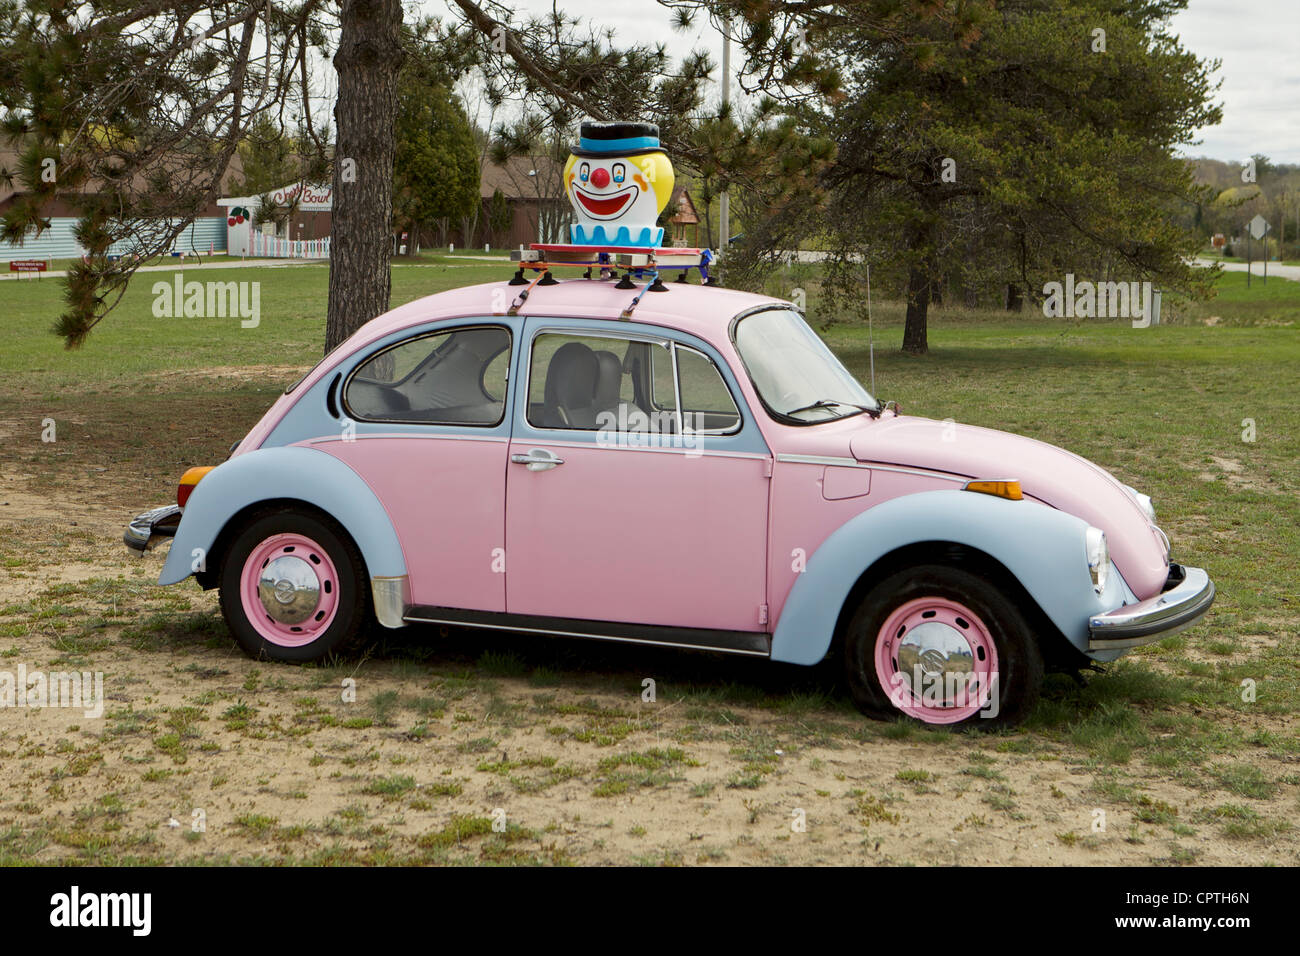 Old Pink Volkswagen Beetle With A Clown Head On Top At The Cherry